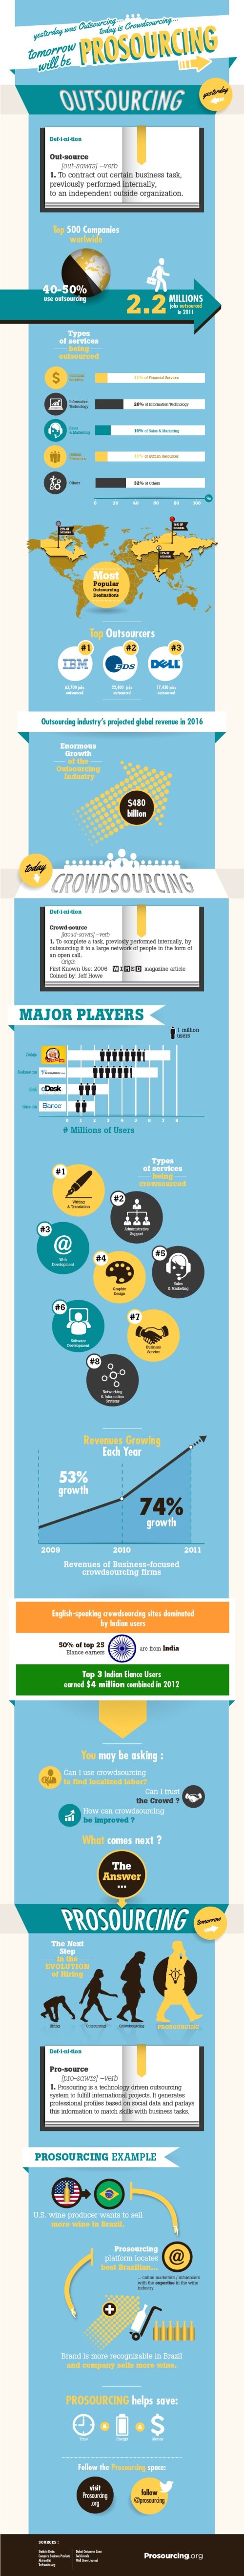 infographie_capseo_prosourcing